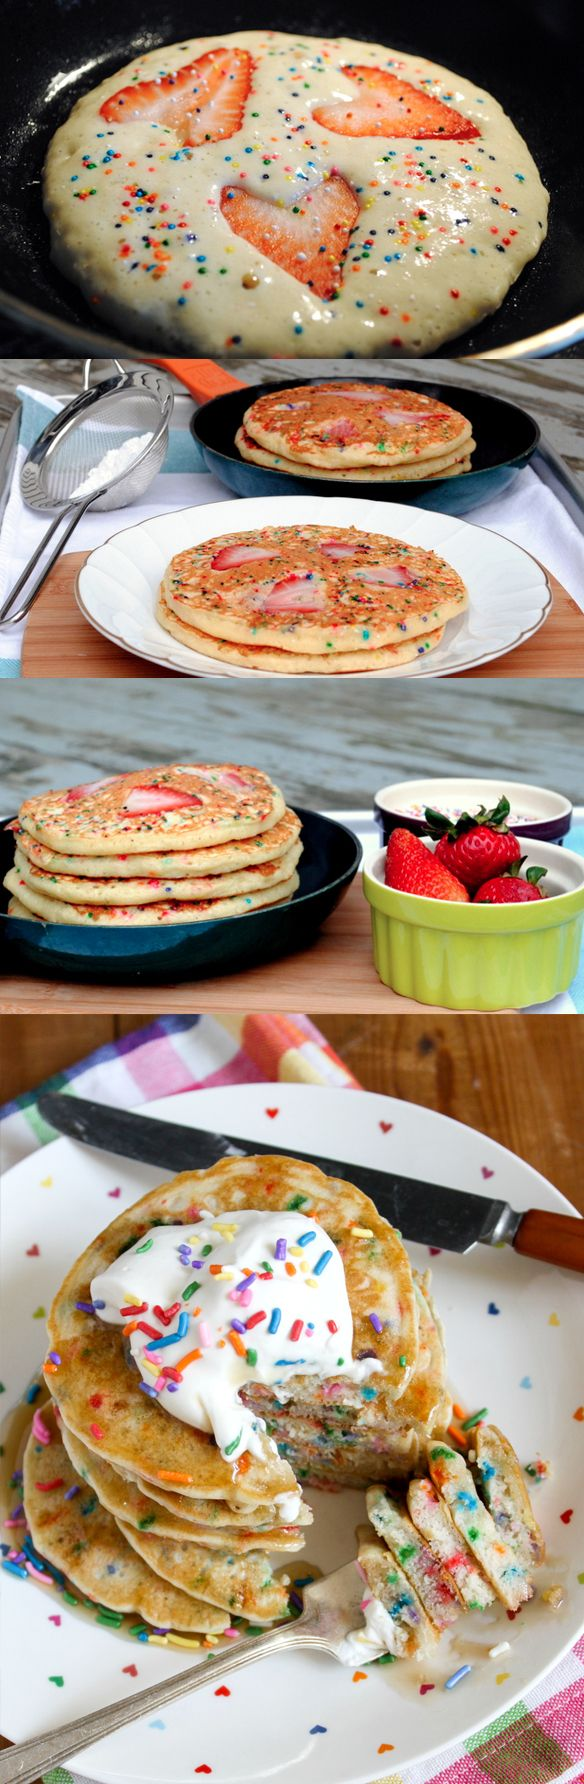 "A fun way to make breakfast for kids. This recipe is for buttermilk breakfast pancakes without a mix. Photos show how you can add fruit and whip cream. Sprinkles optional. Say ""Happy Birthday!"" or celebrate a special occasion with this breakfast that every kid will love!"